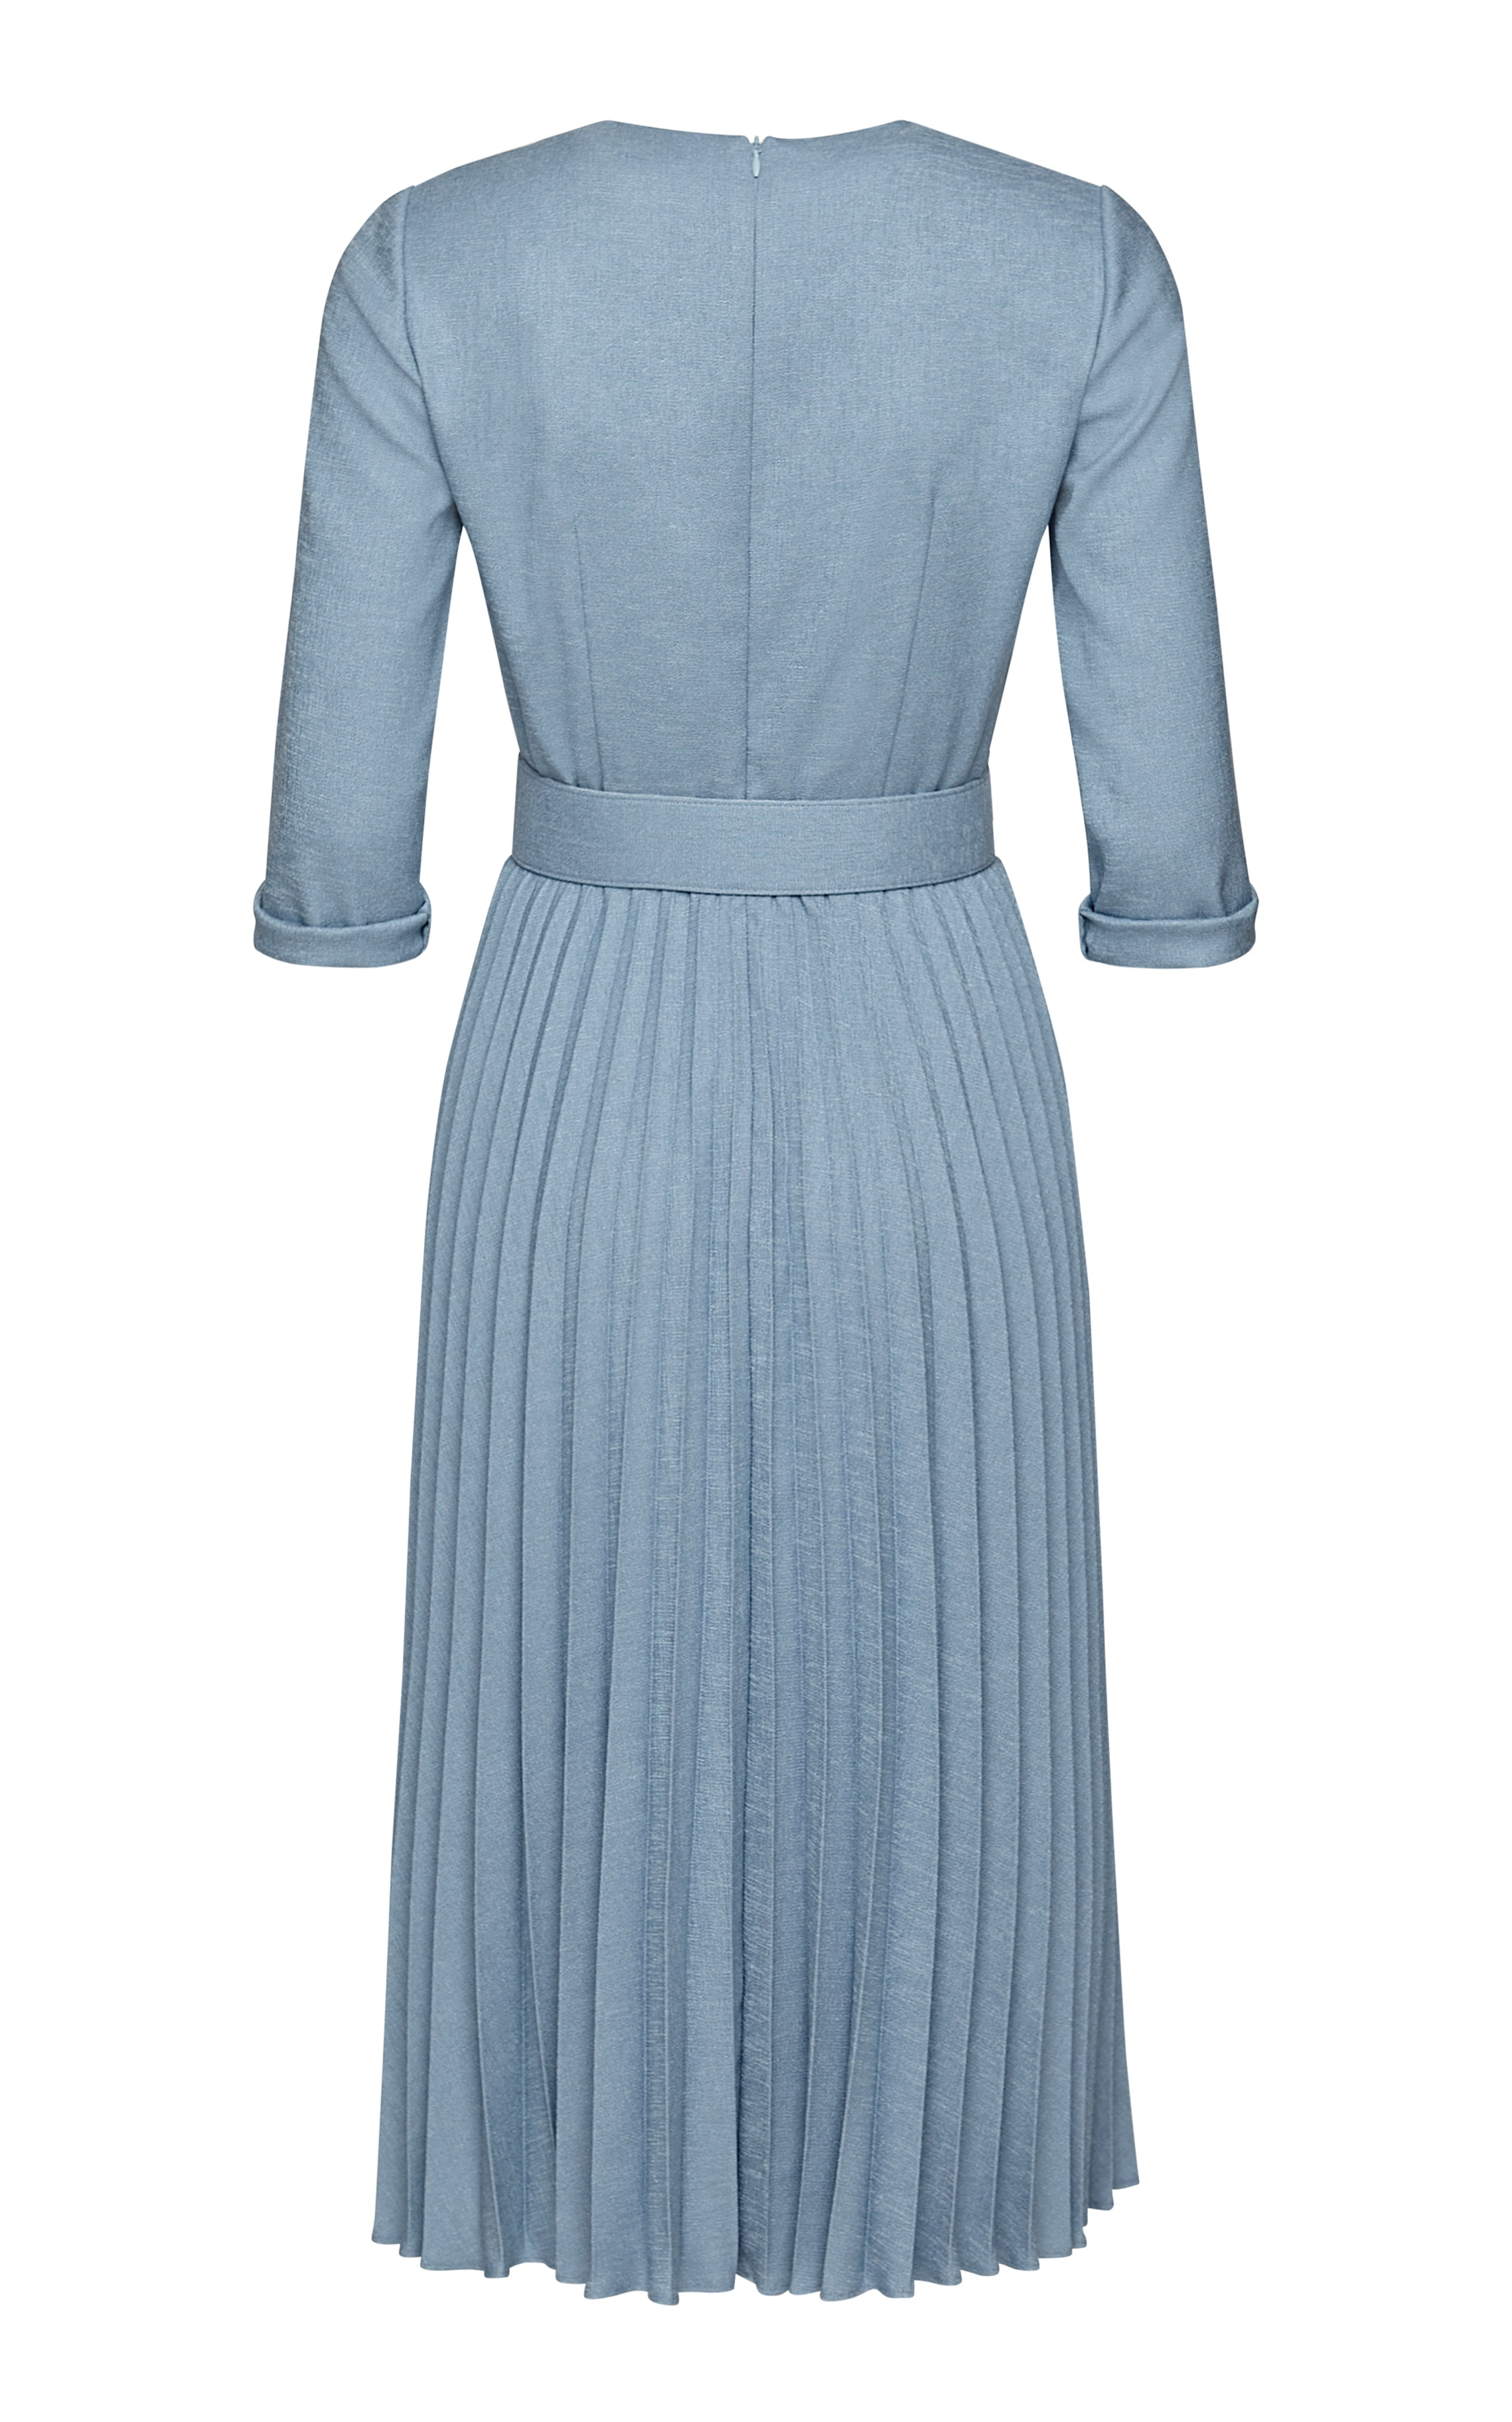 Ronja Pleated Midi Dress with Button Closure and Belt